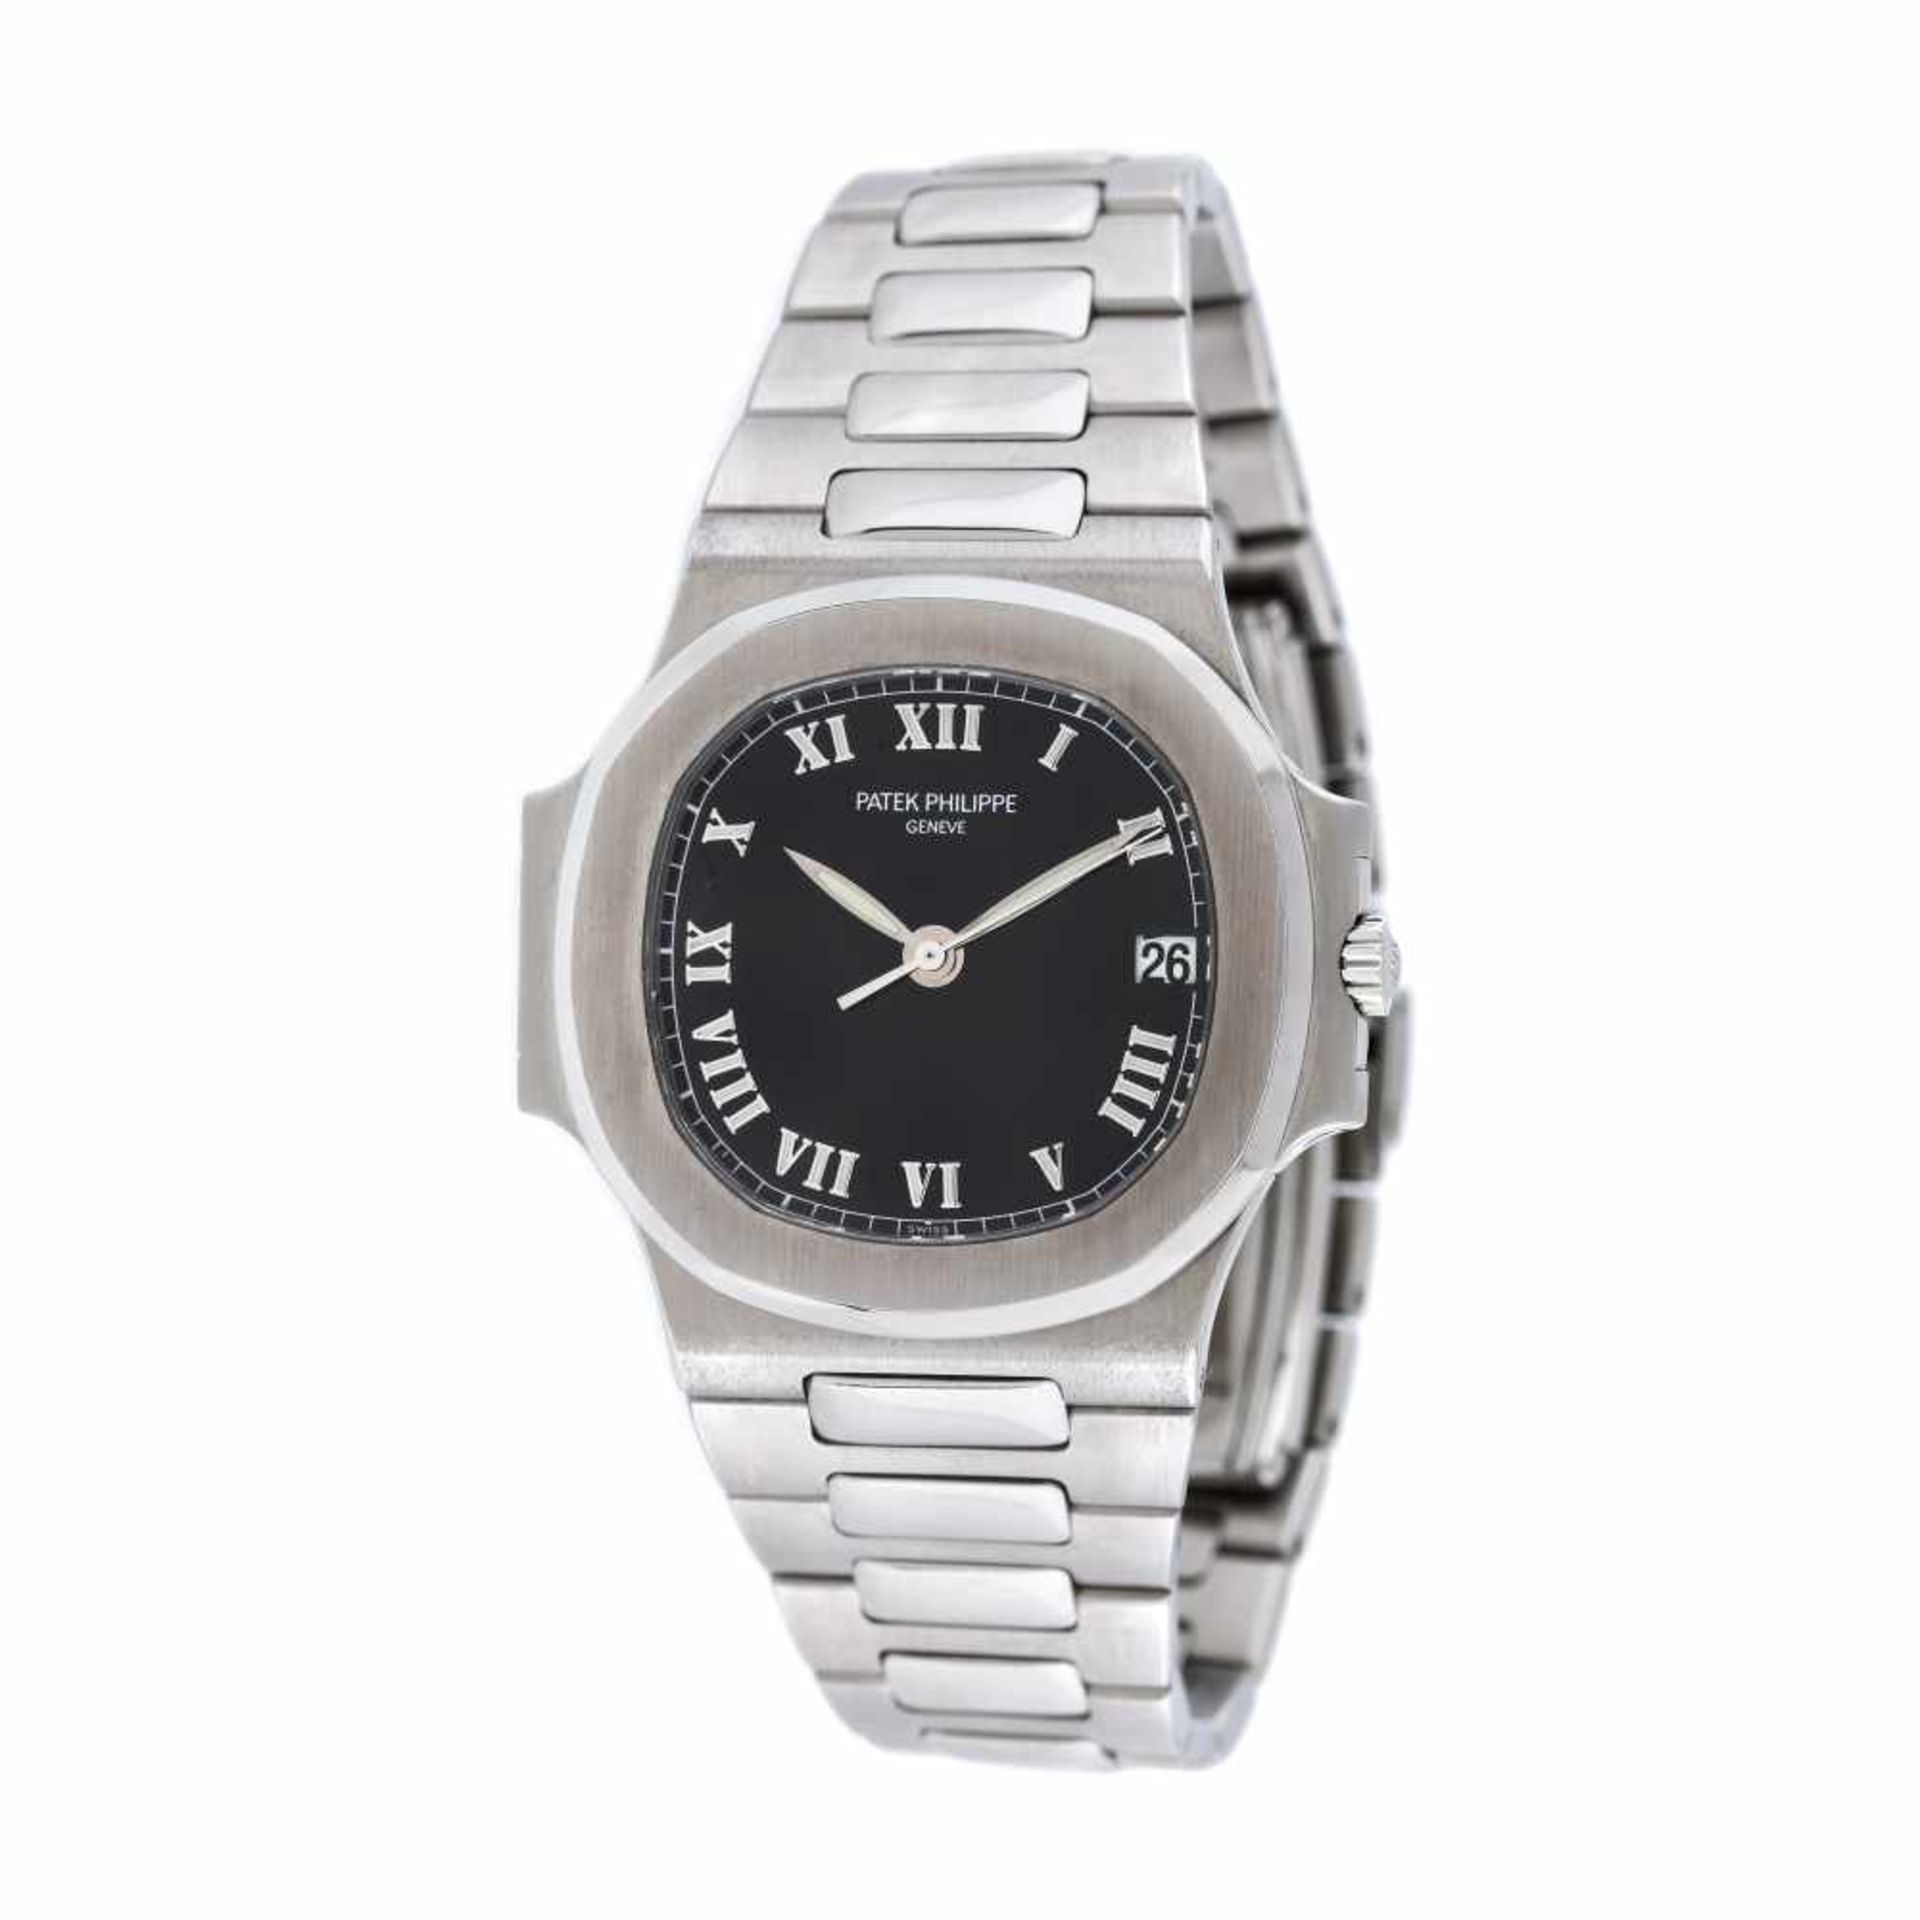 Patek Philippe Nautilus wristwatch, unisex, provenance documents